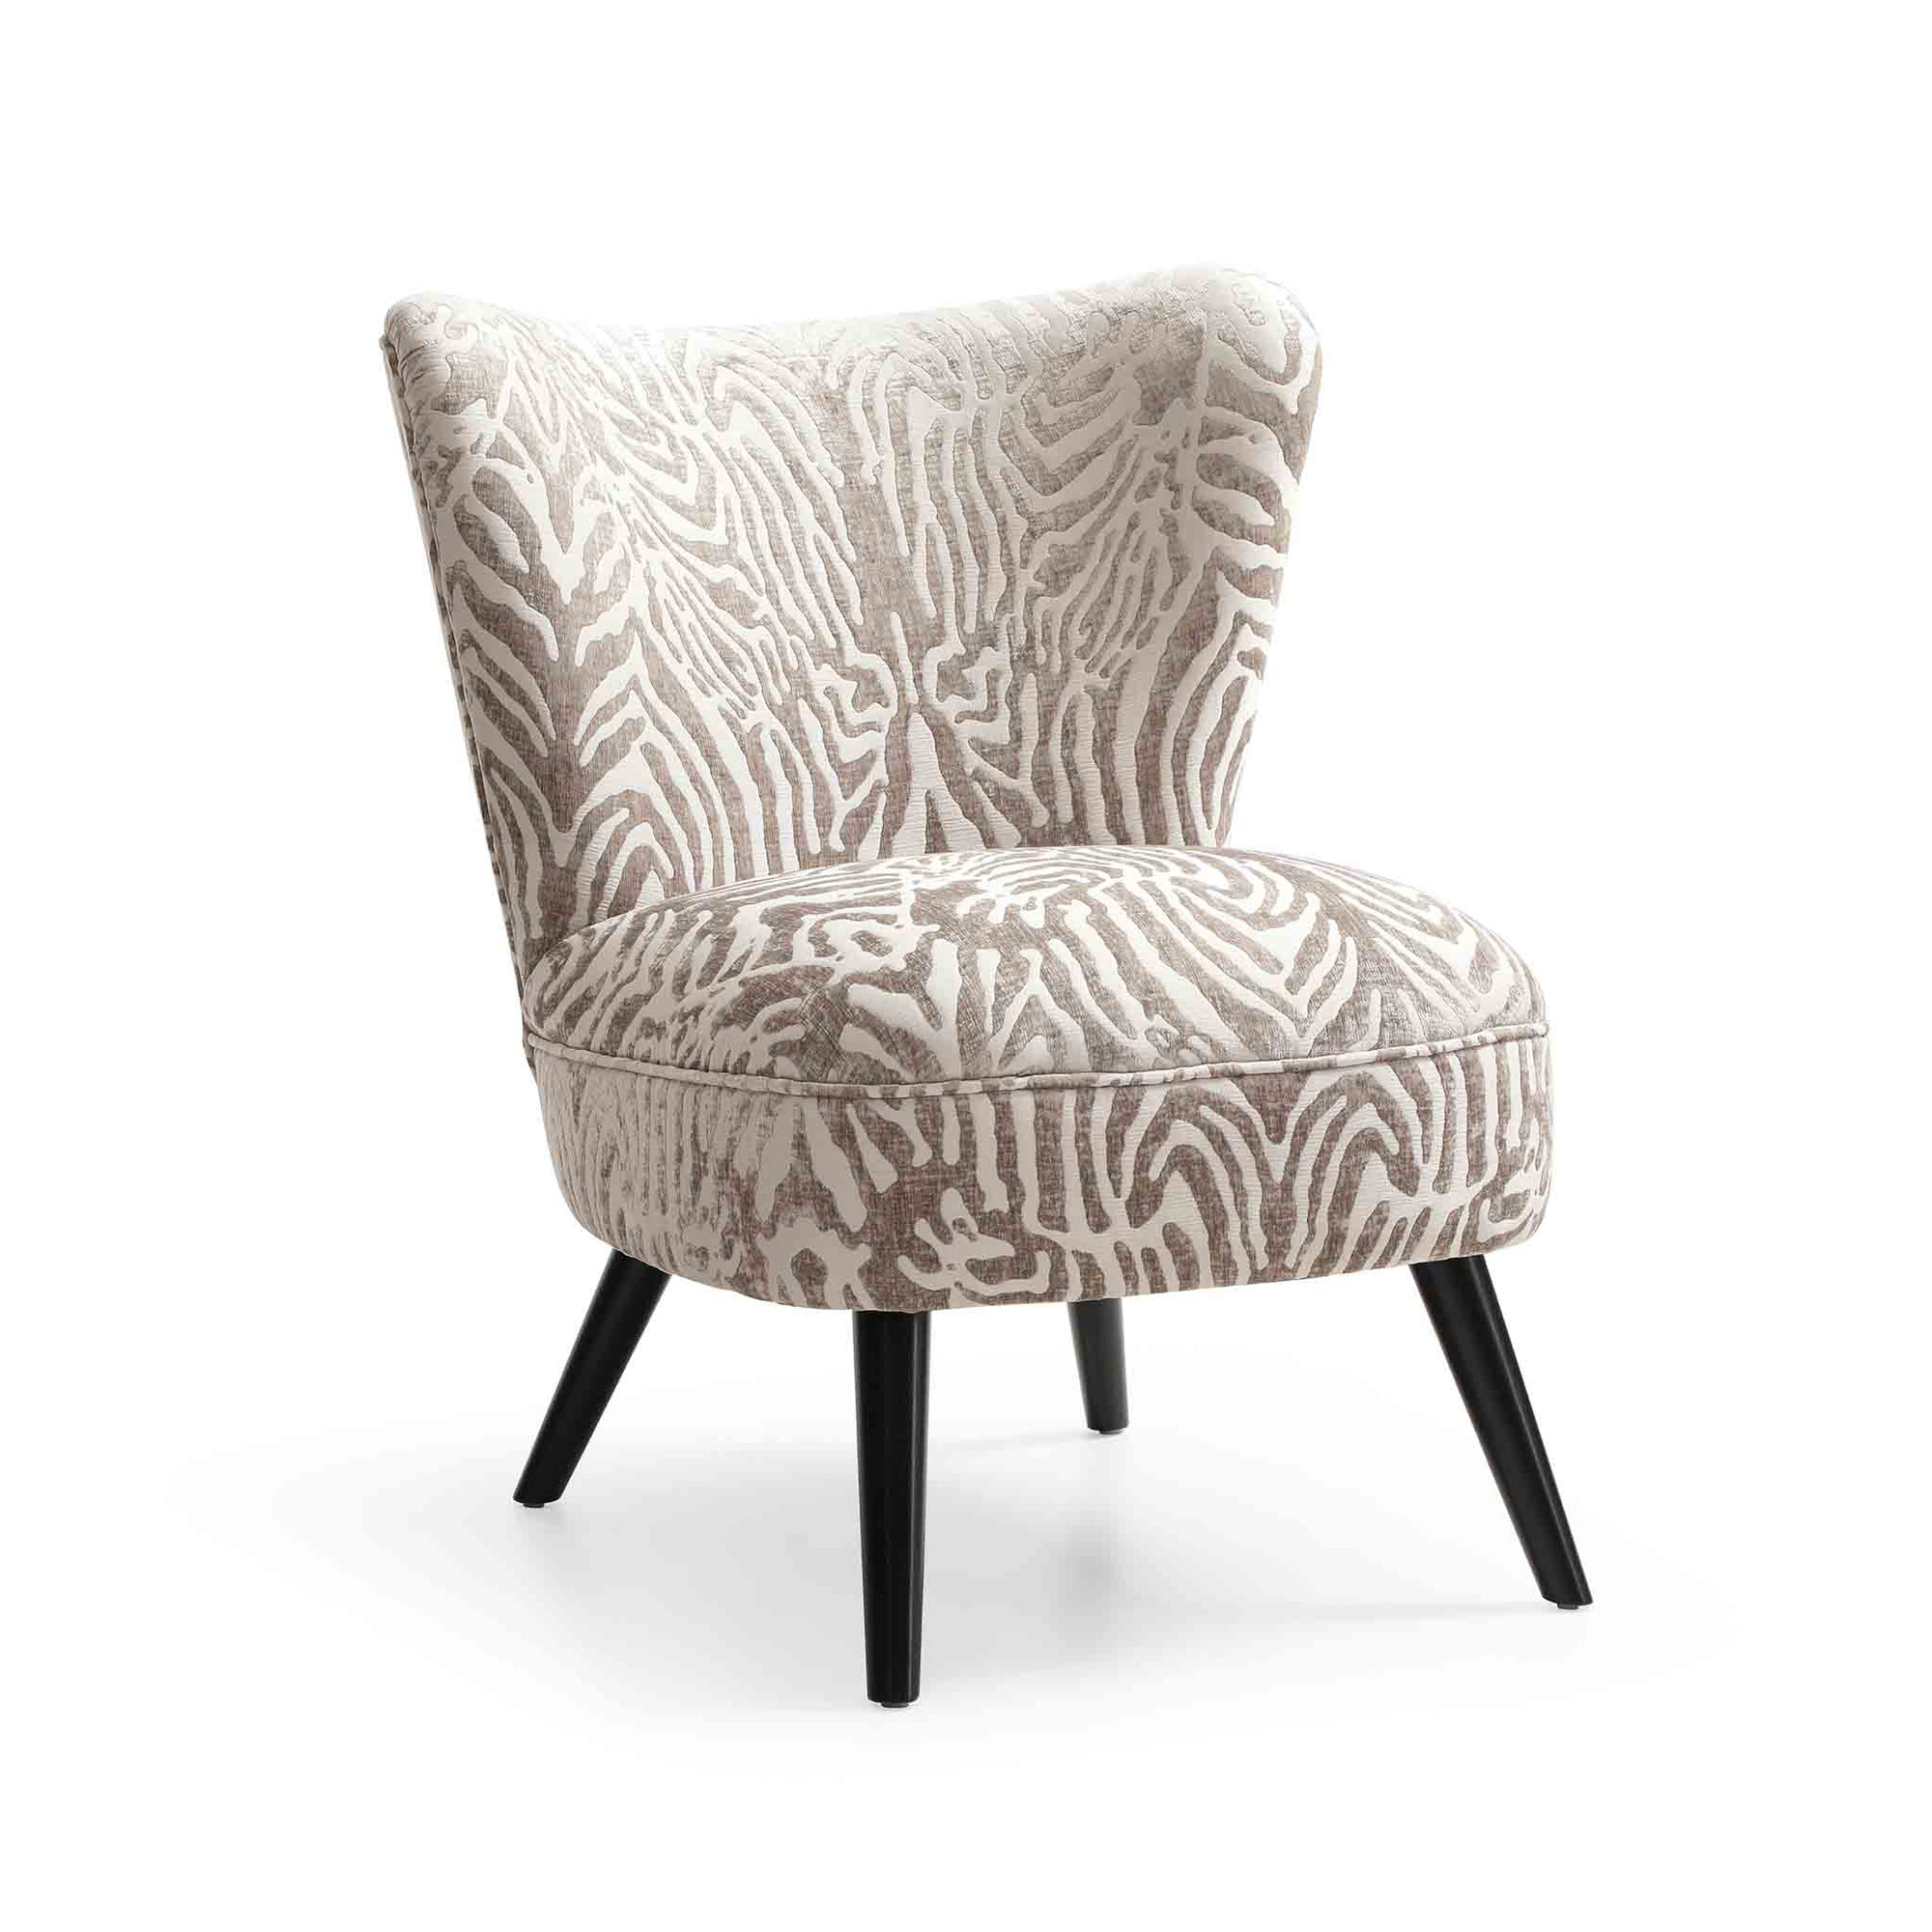 Zebra silver print accent chair from Roseland Furniture